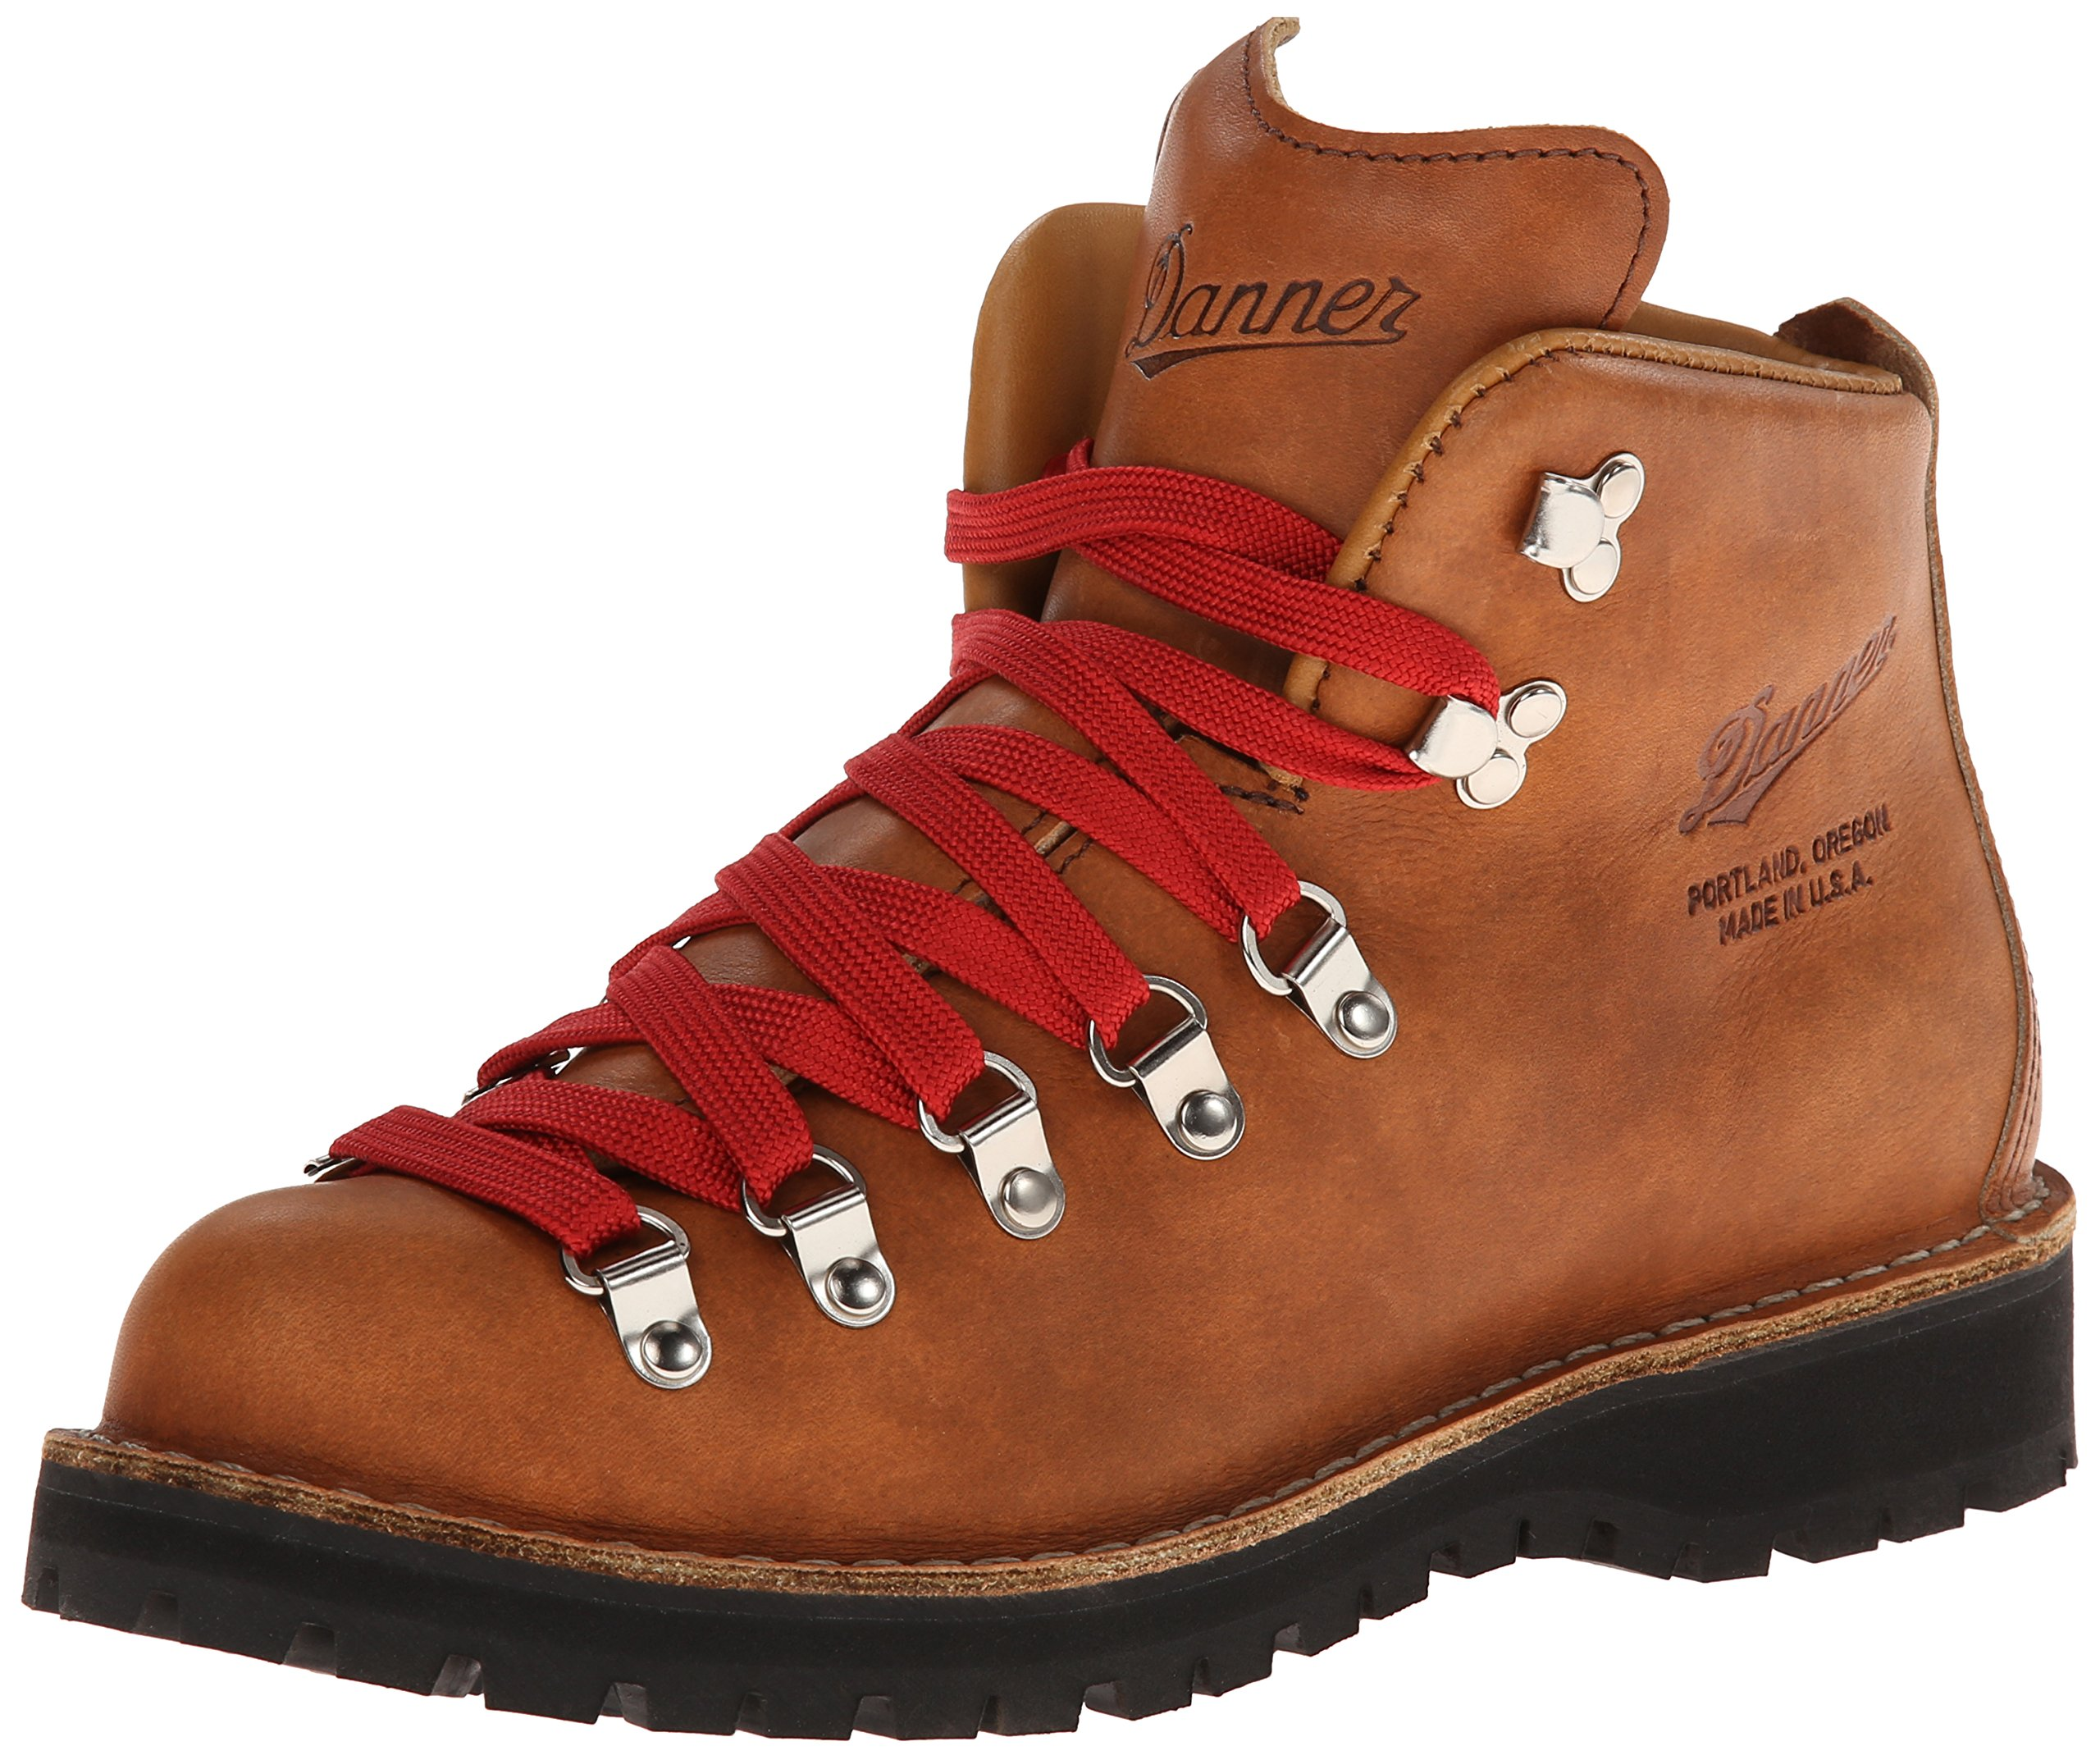 Danner Women's Mountain Light Cascade Hiking Boot, Brown, 11 M US